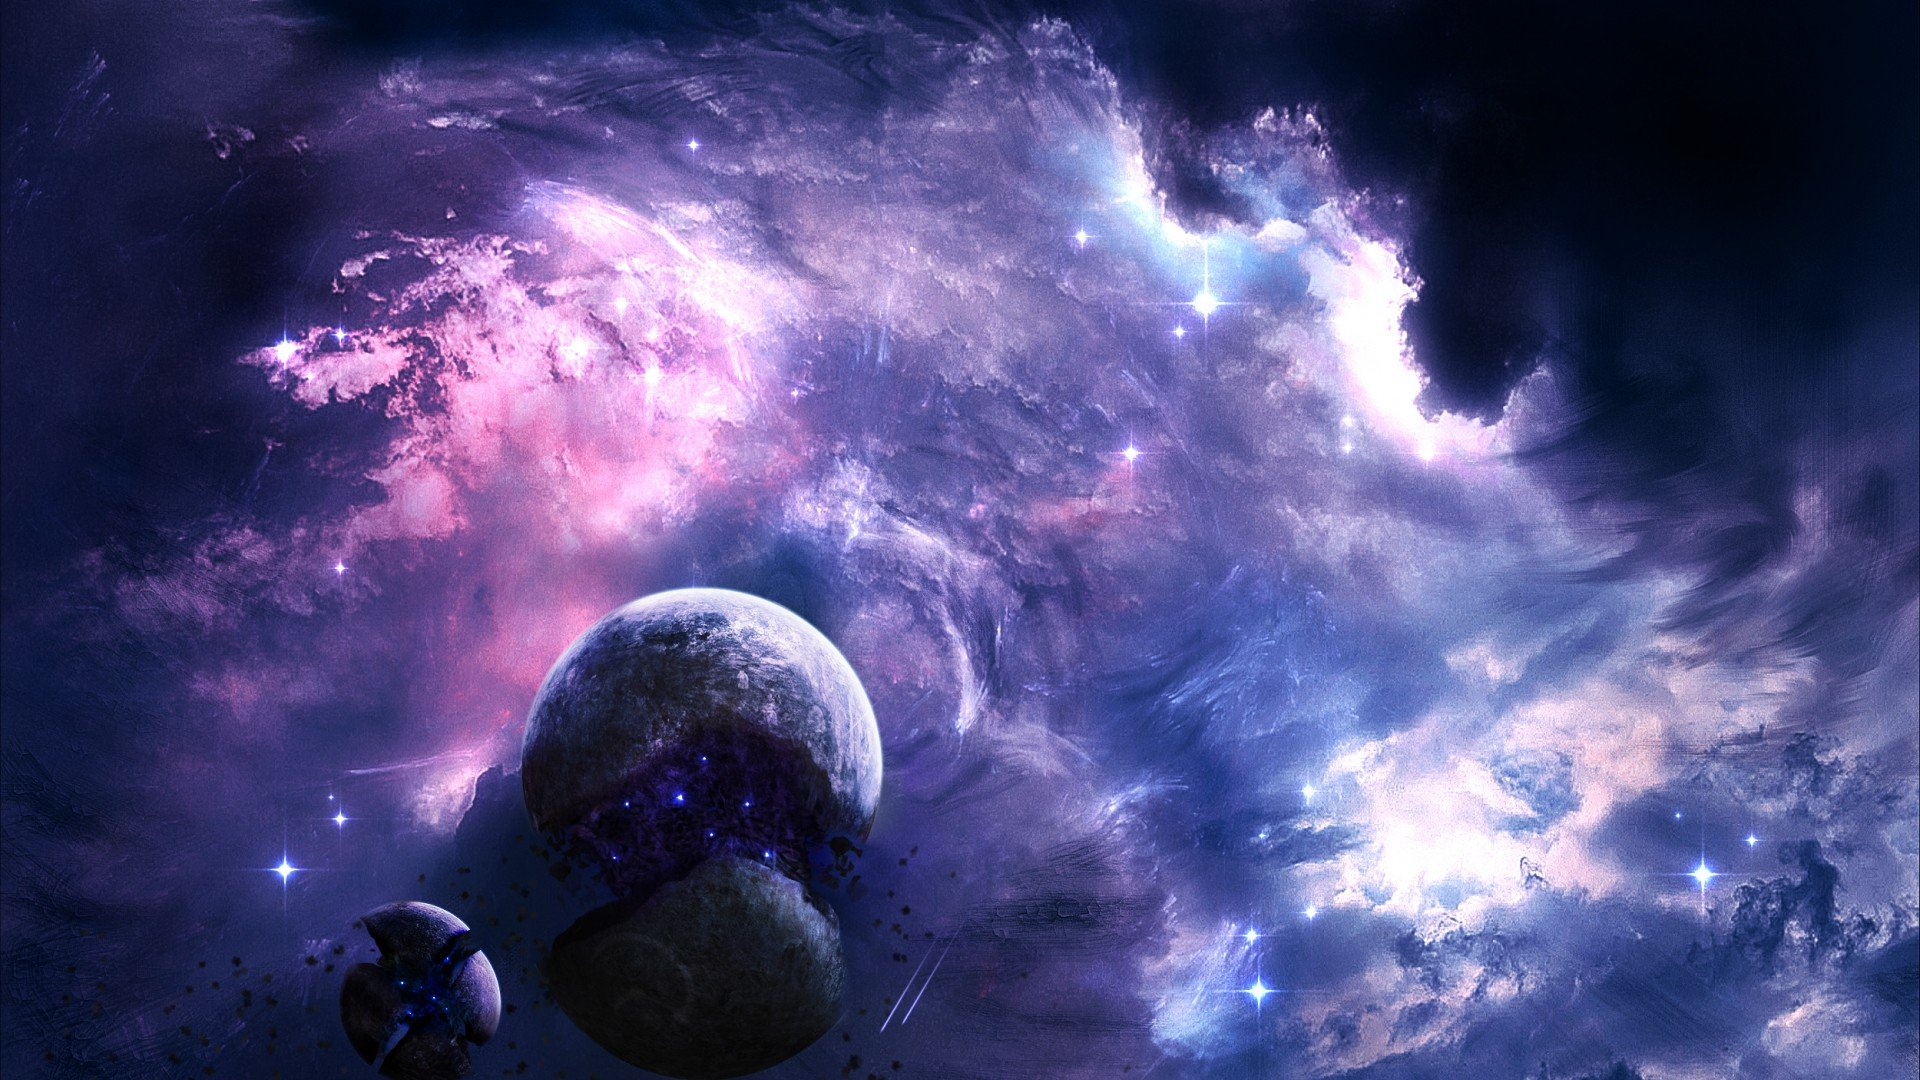 space wallpapers 11